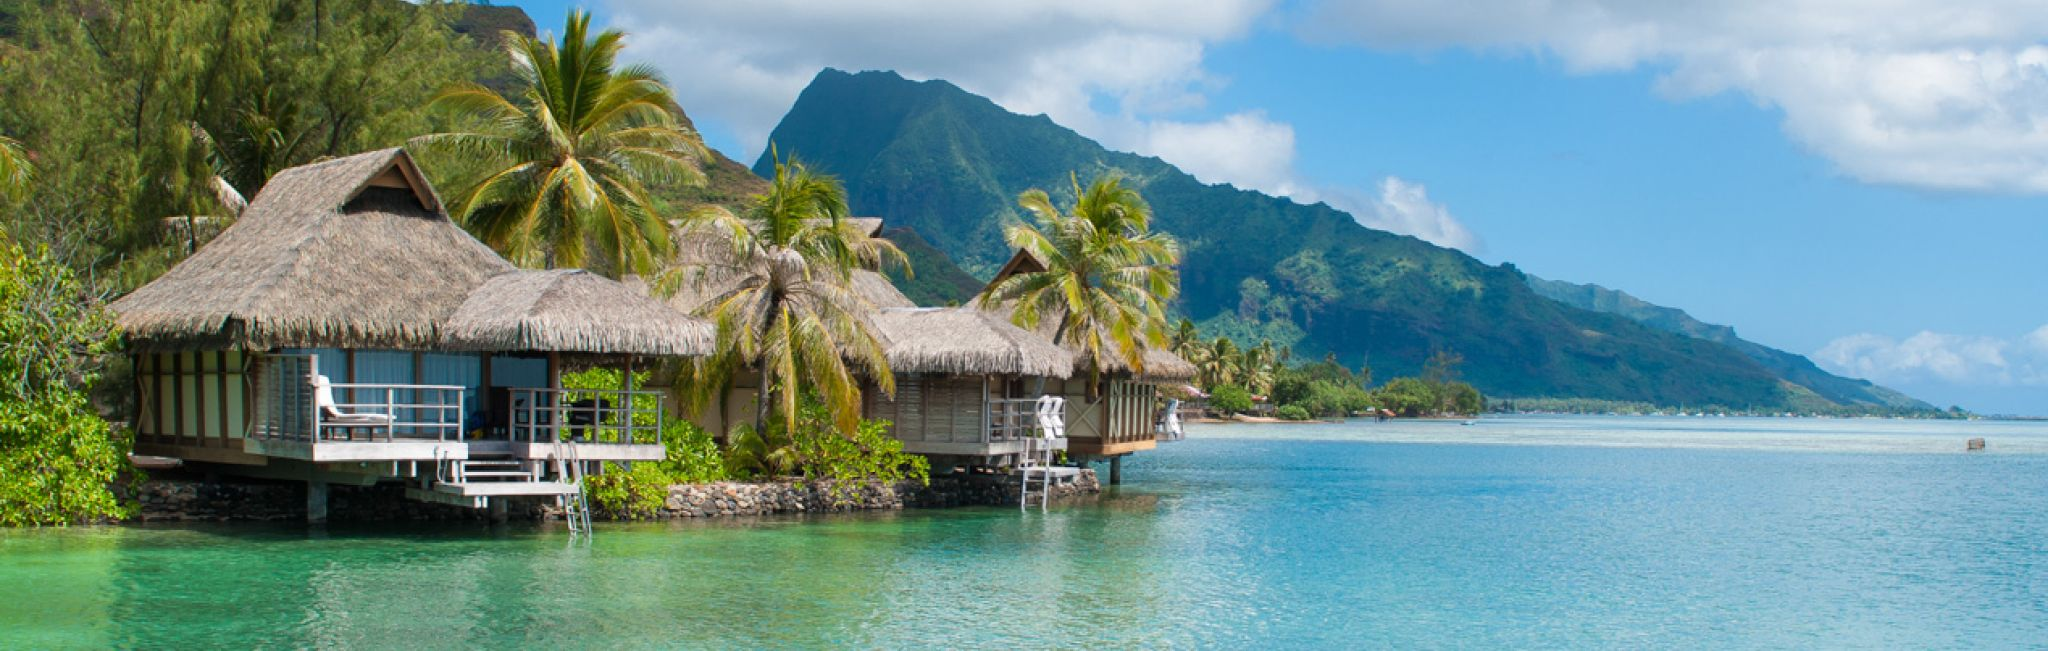 A bungalow on a remote part of Tahiti.